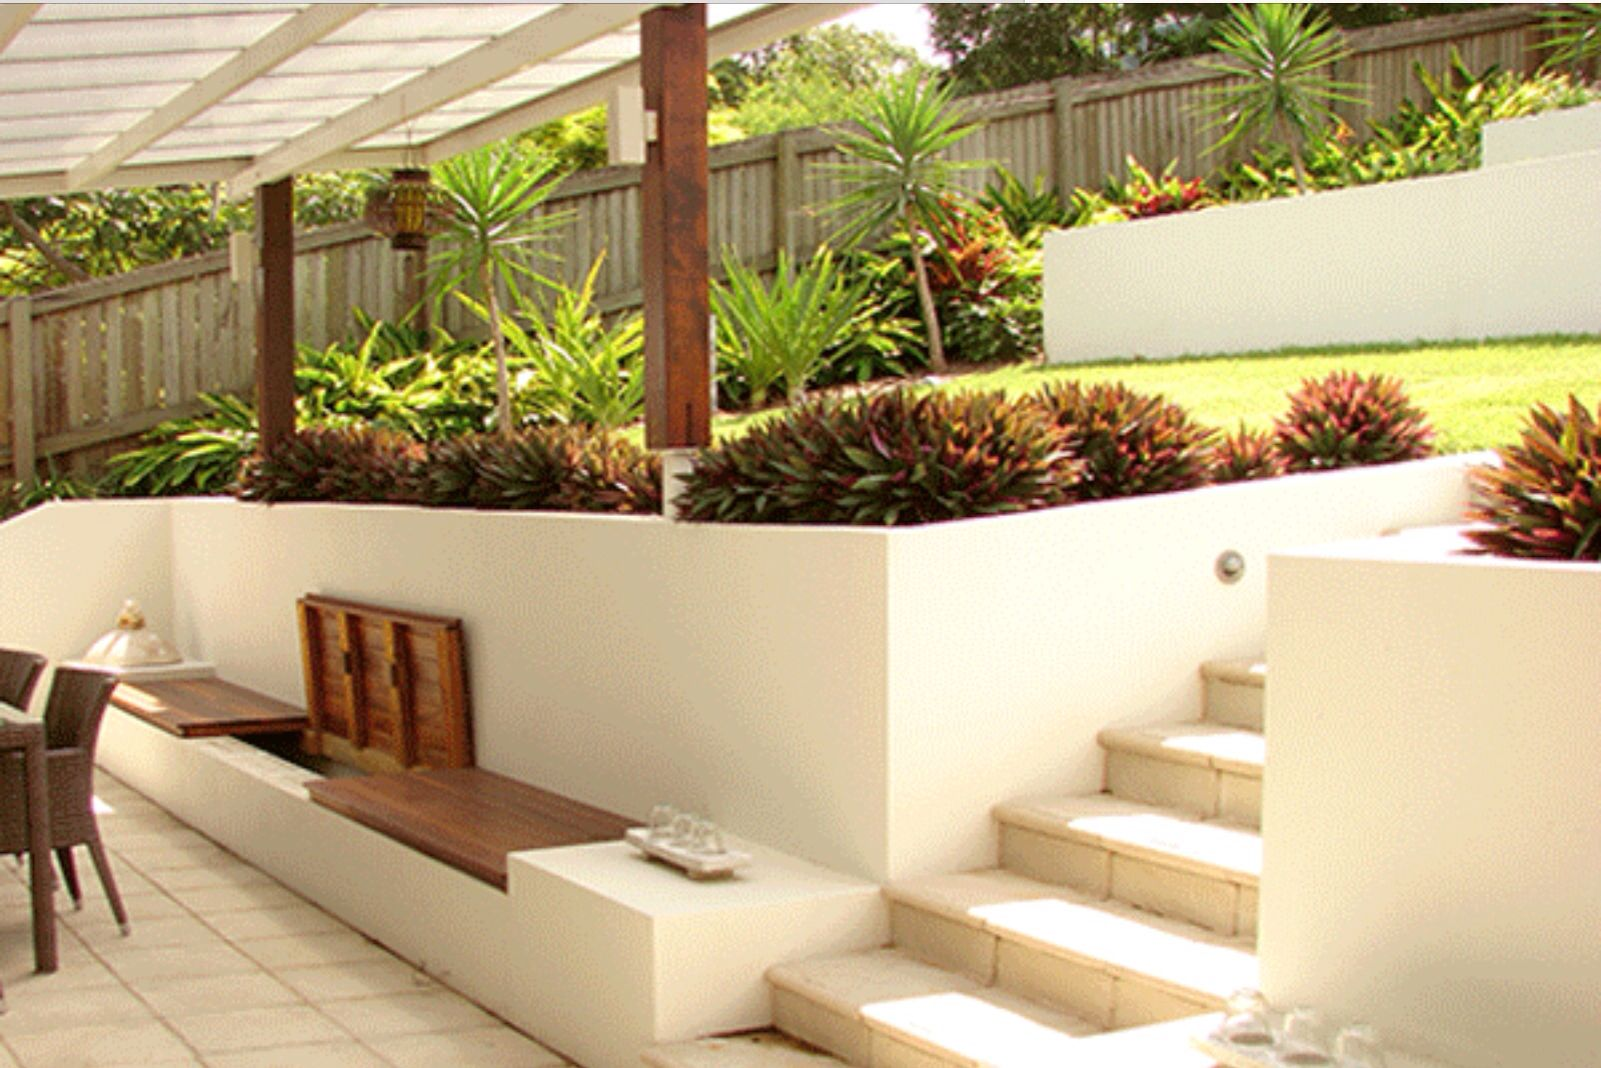 Retaining Walls Steps And Built In Seating Storage In